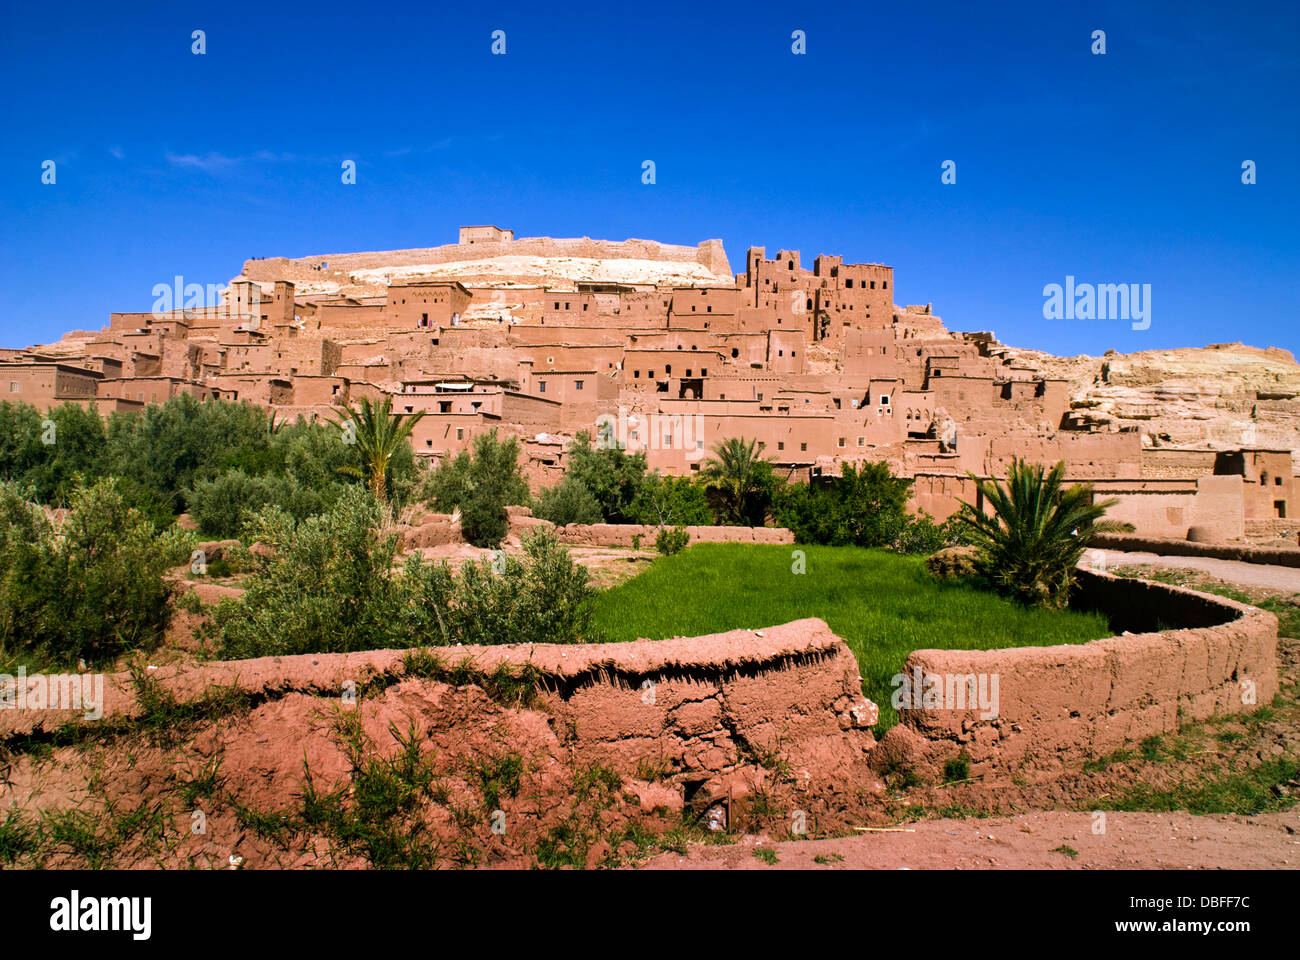 Aït Benhaddou in Berber Ath Benhadu Morocco. Most of the town's inhabitants now live in a more modern village - Stock Image